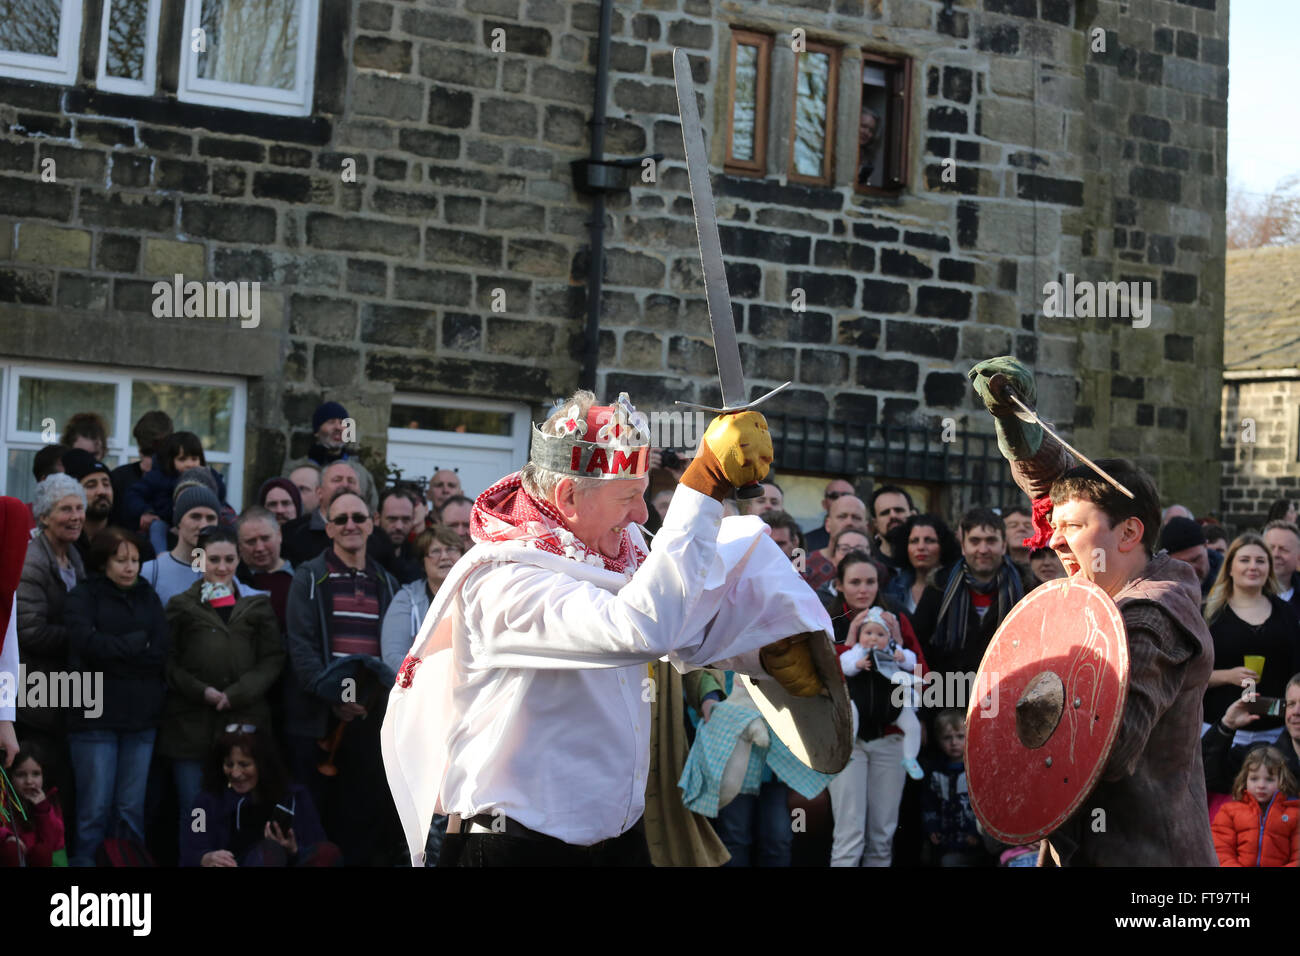 Heptonstall, UK, 25th March 2016. St george with his sword in action during a pace egg play in Heptonstall, UK, Stock Photo